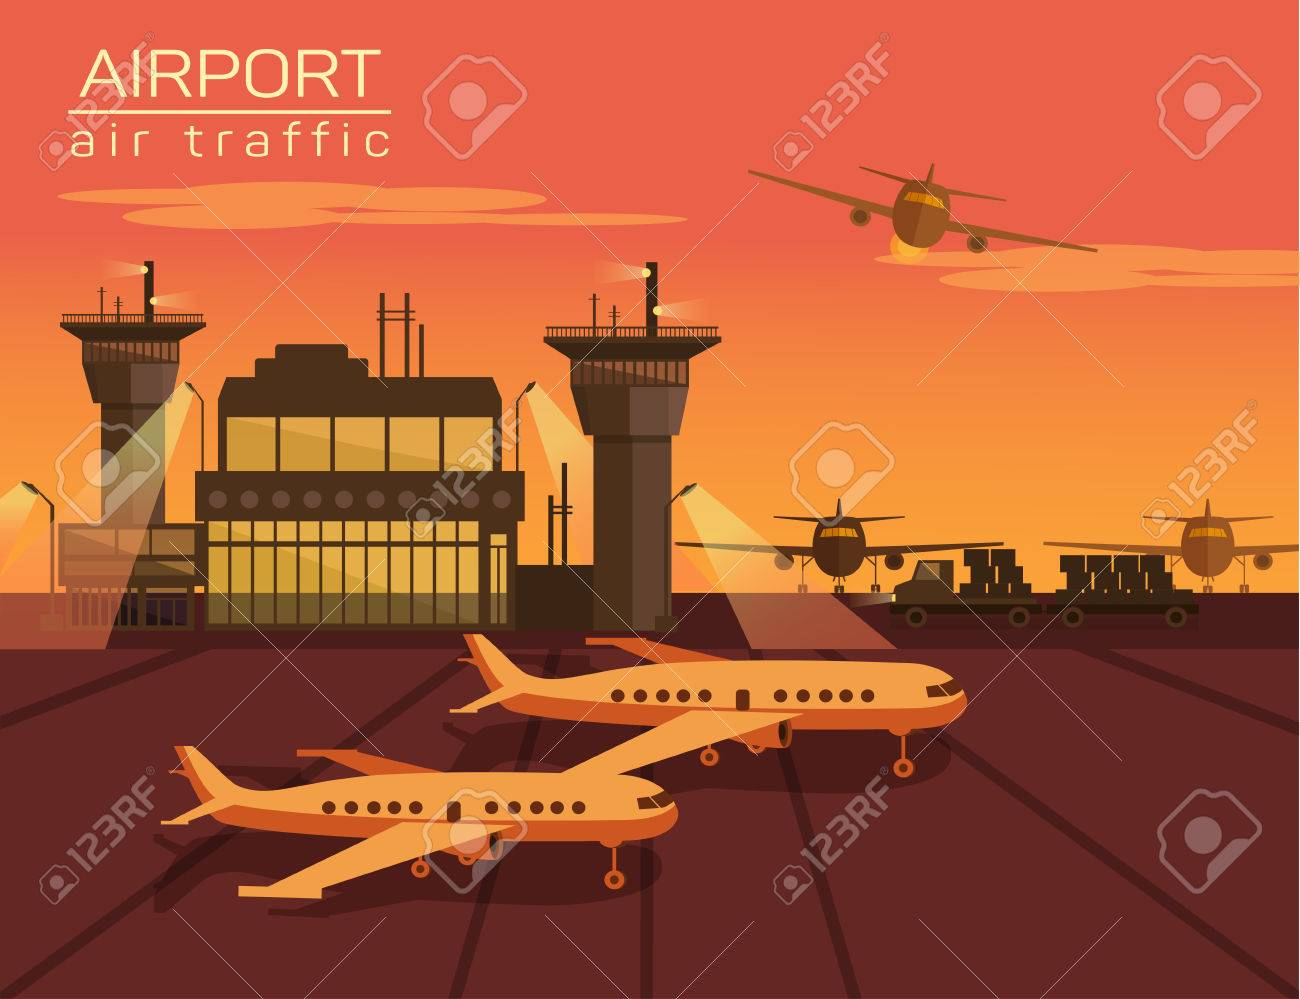 Vector illustration of airport - 42151118